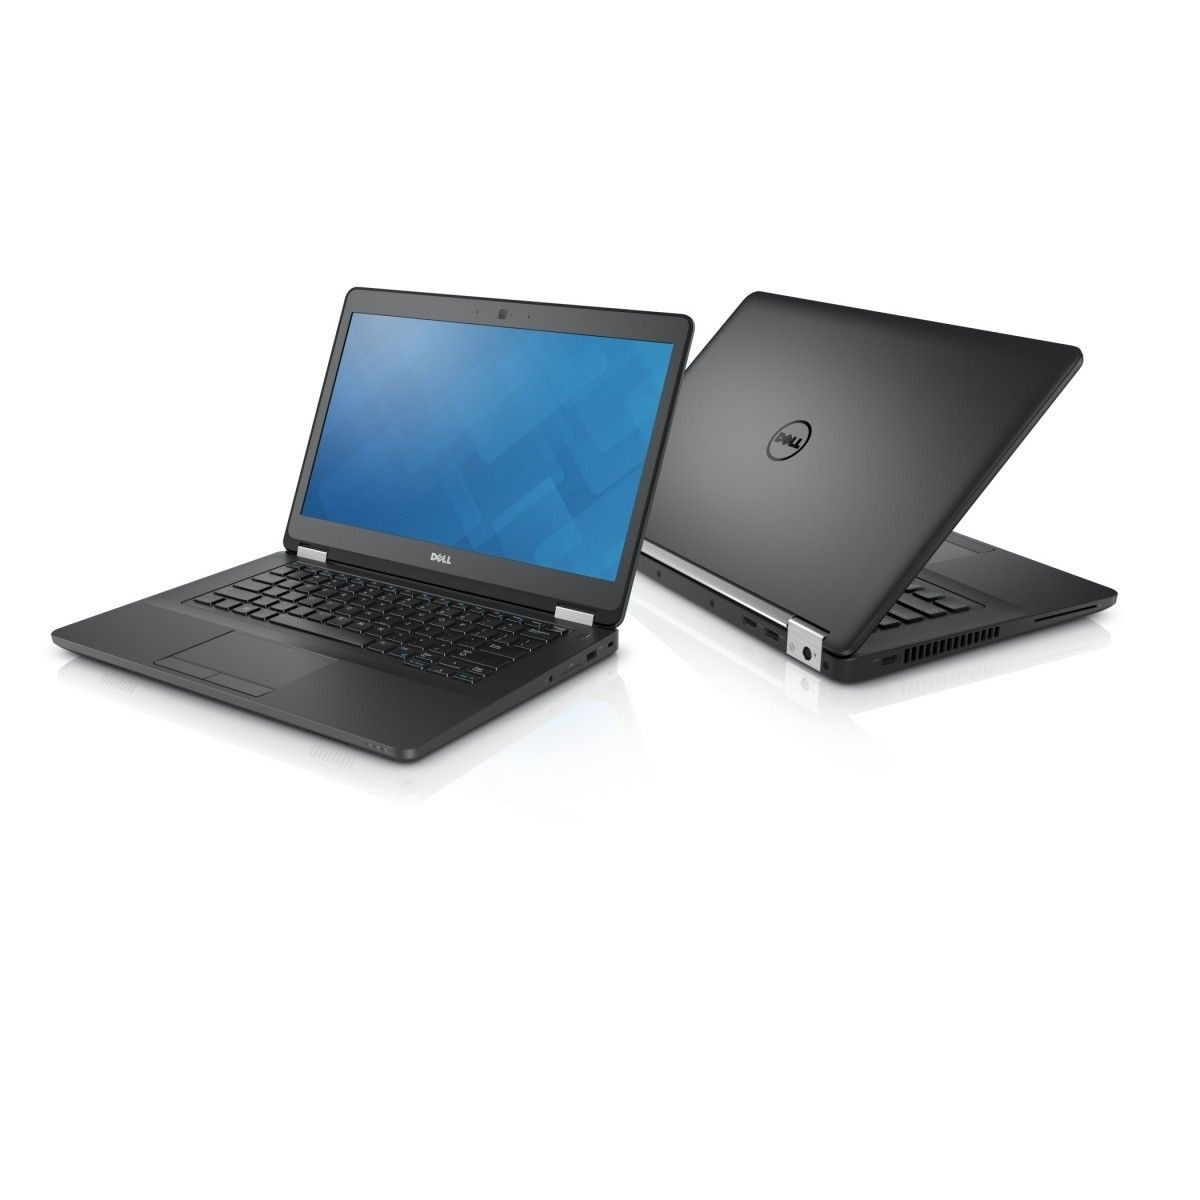 Dell Latitude E5470 Win7/10Pro(64-bit win10, nosnik) i3-6100U/500GB/4GB/HD520/14'HD/KB-Backlit/47WHR/3Y NBD